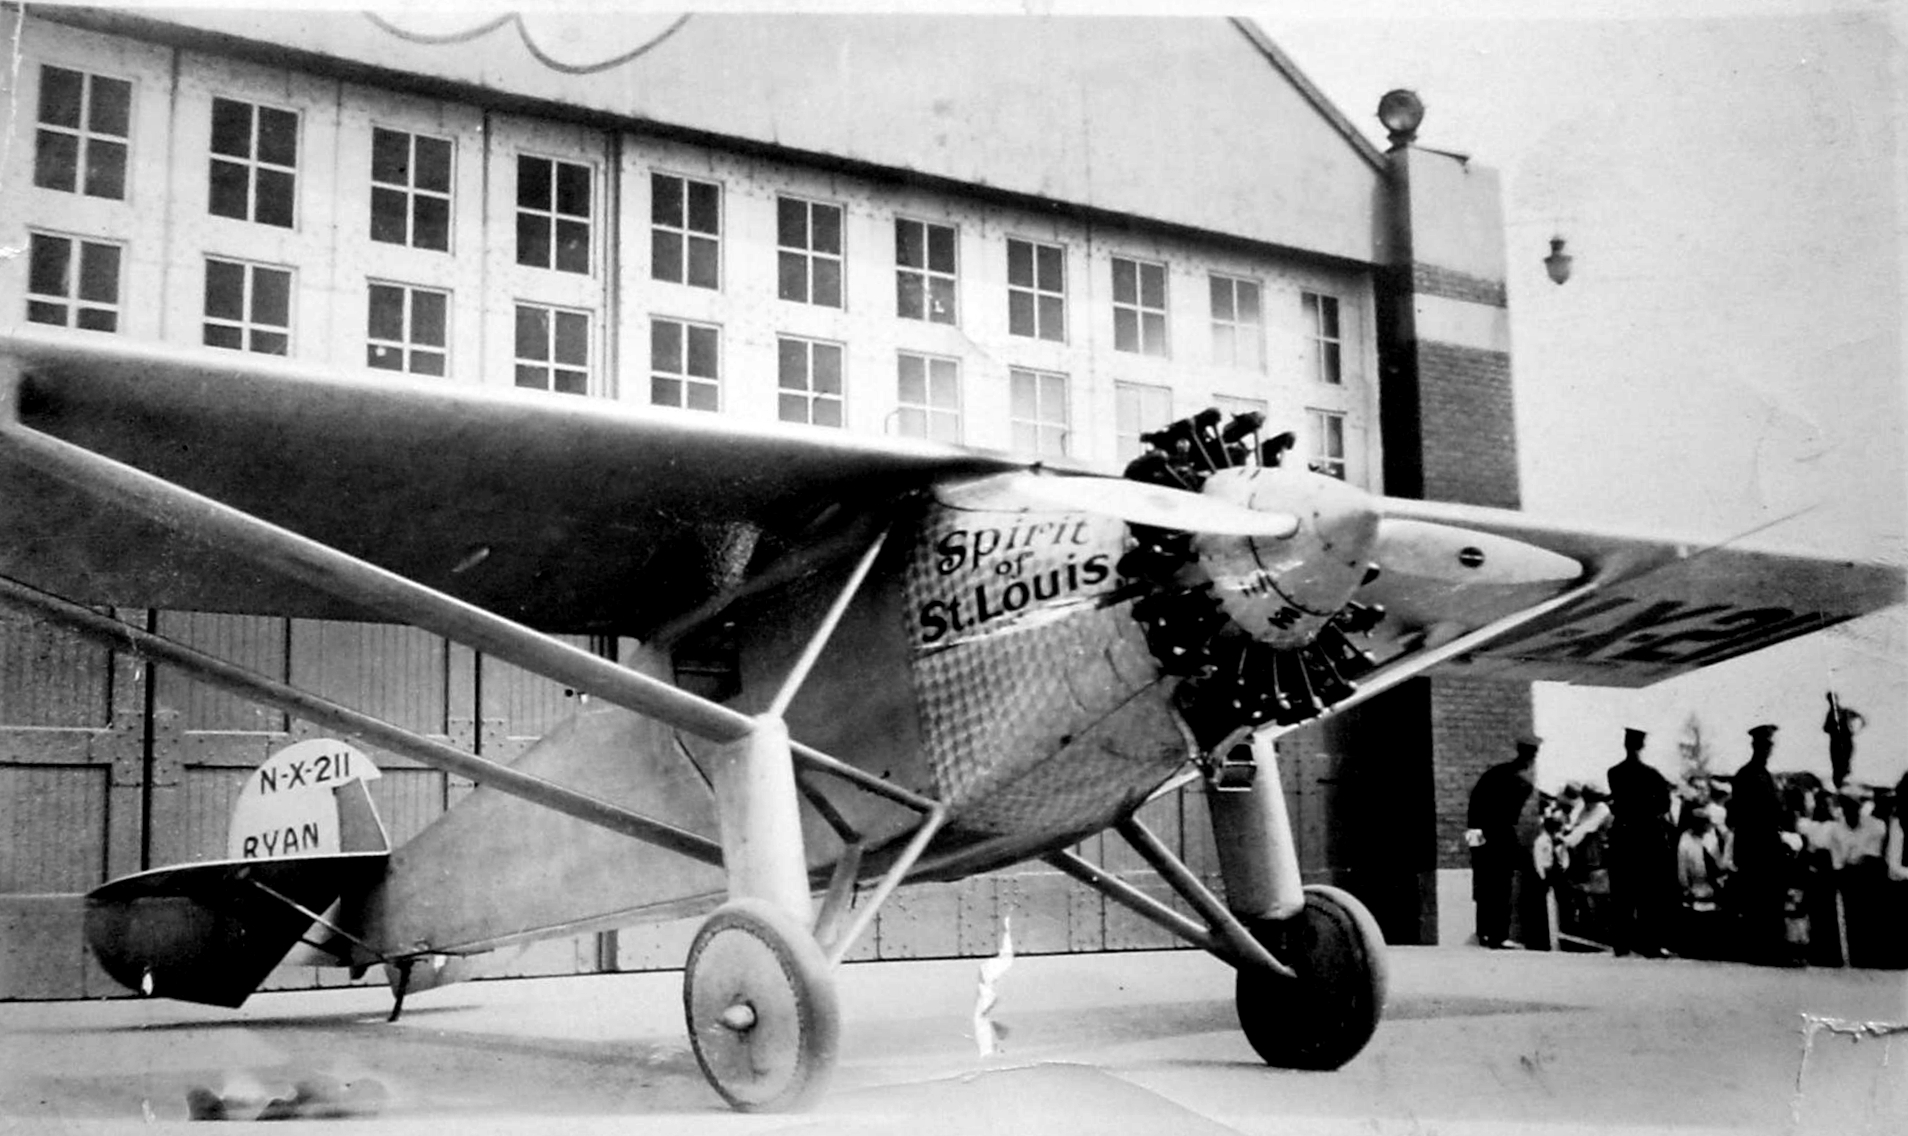 The Spirit of St. Louis in Cleveland, Ohio, on August 1, 1927. Photo taken by Robert H. Keener.